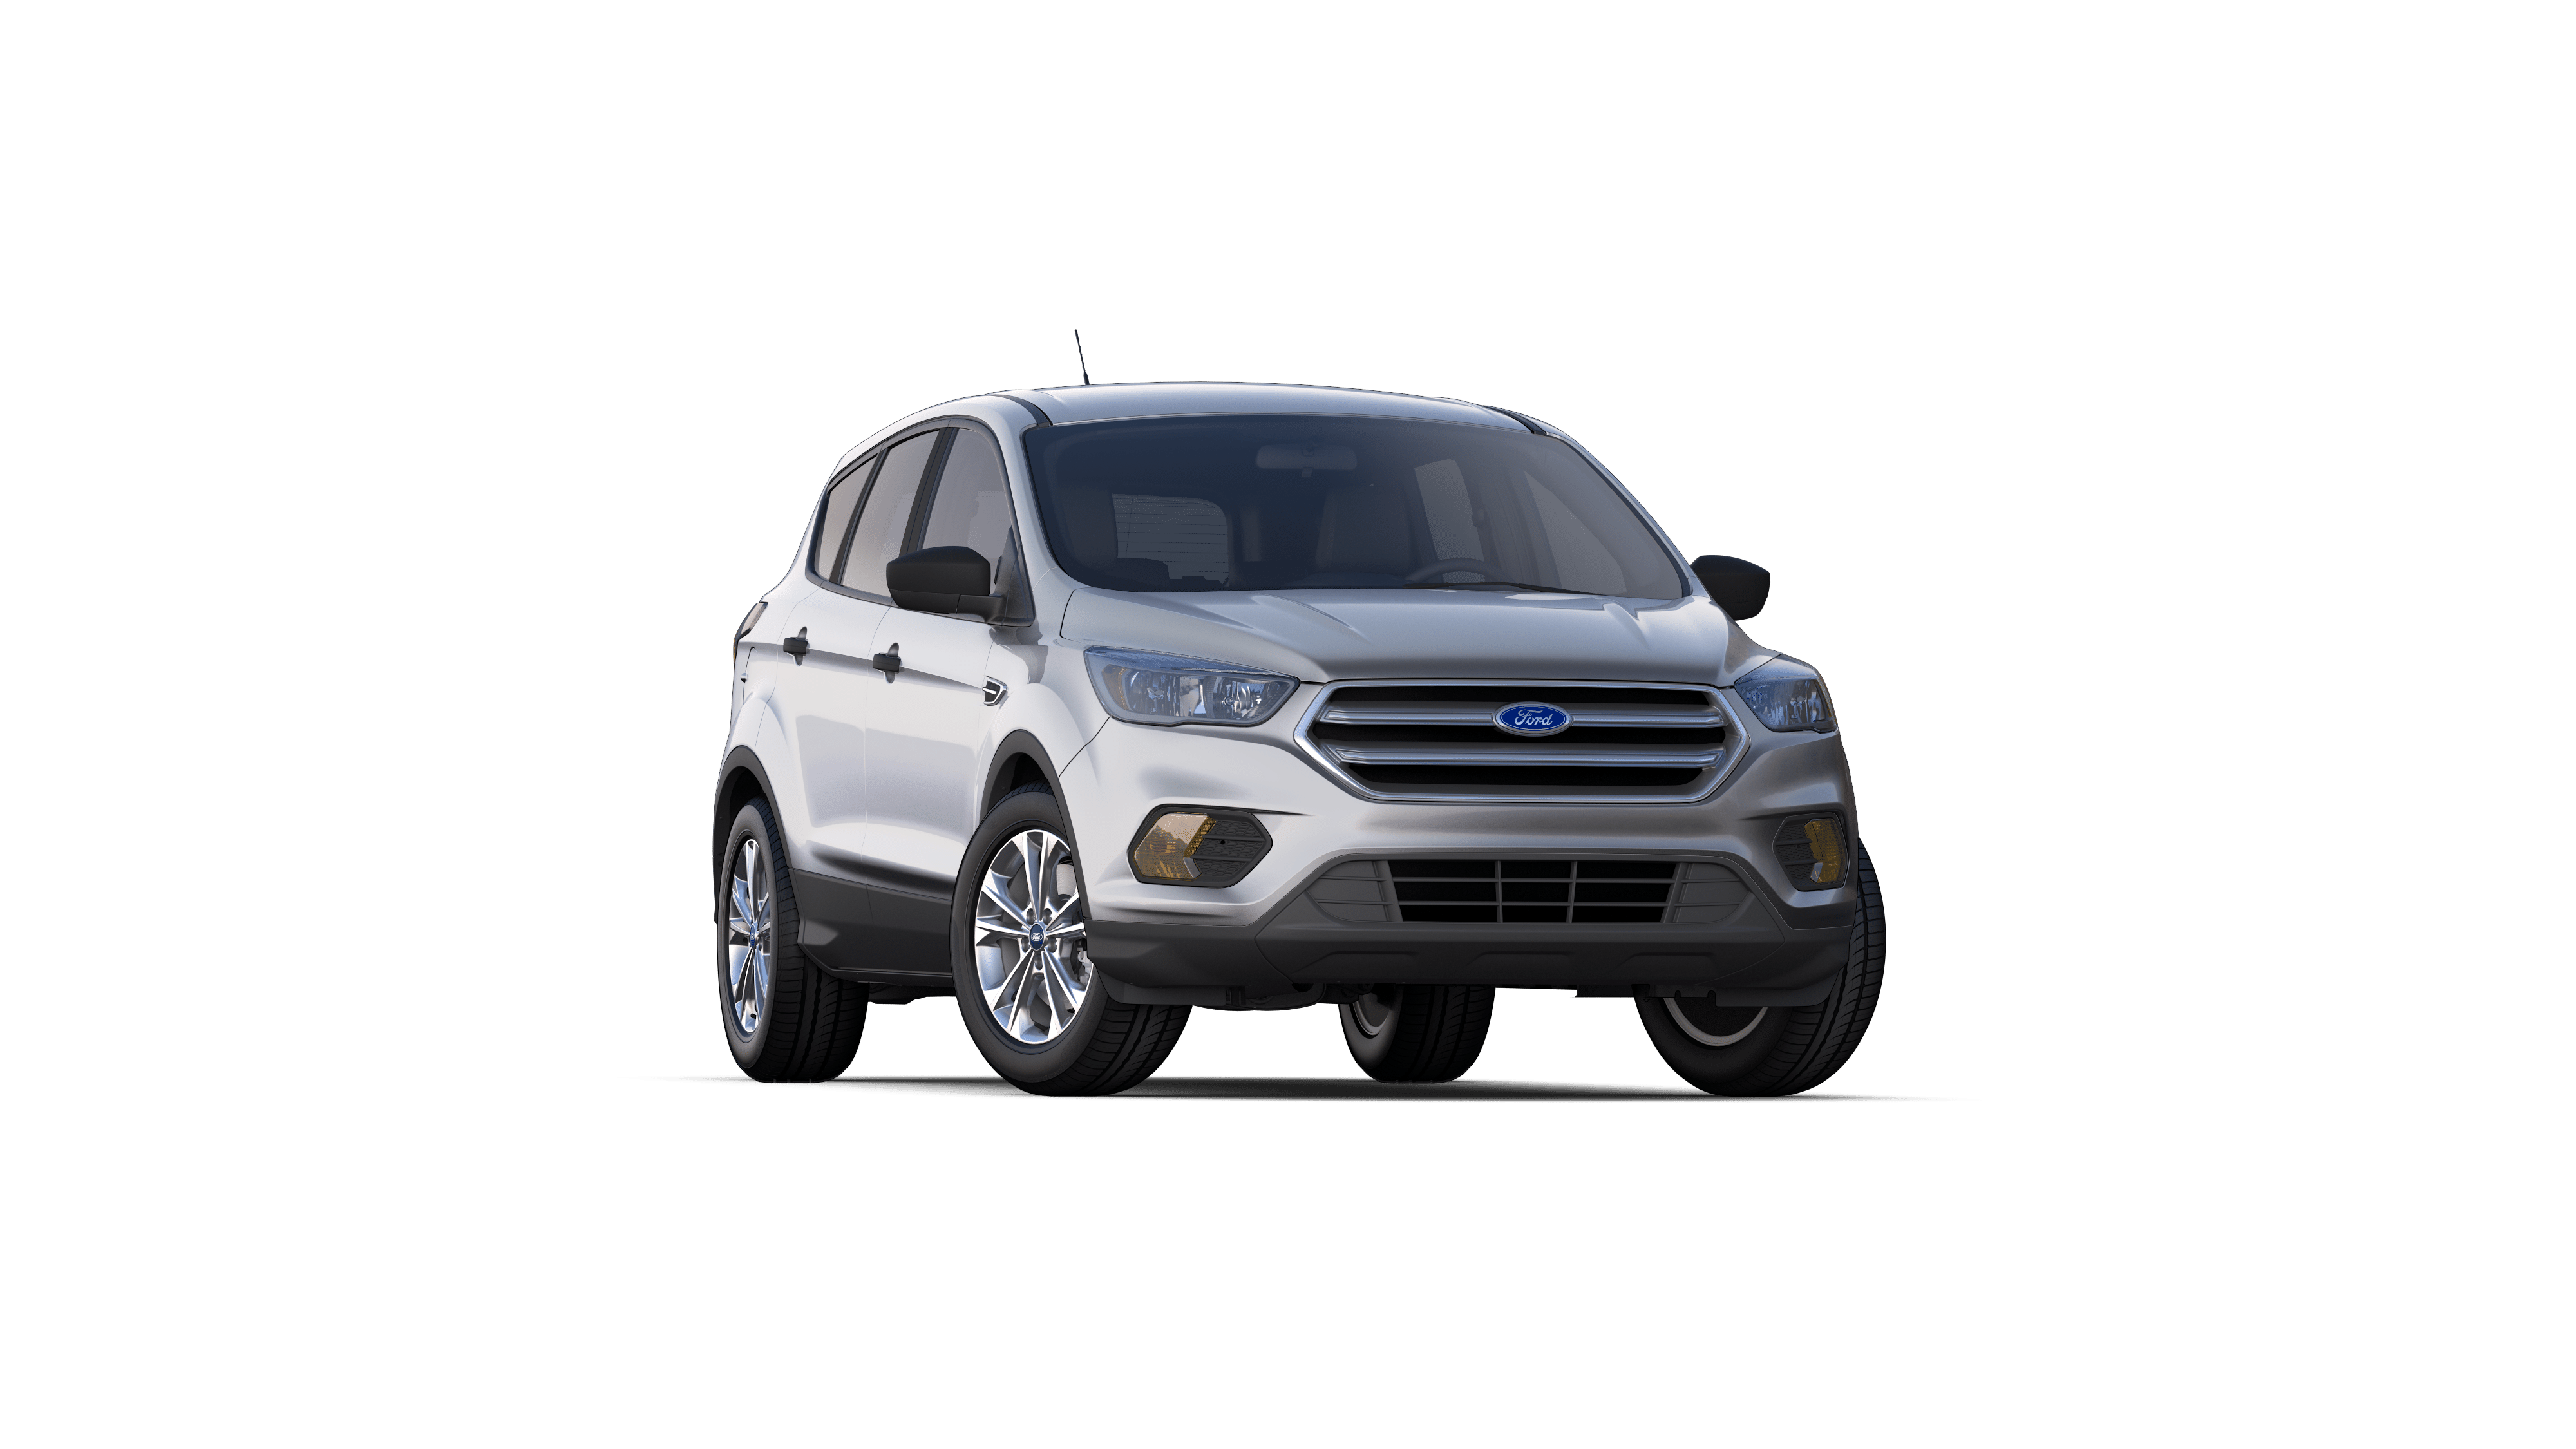 2019 Ford Escape for sale in Lihue - 1FMCU0F72KUB86864 ...